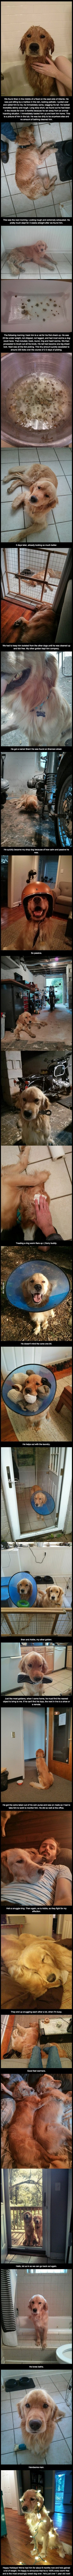 awwww..great story & pictures♥ Love reading things like this! Truly Inspiring! Dogs are the best!